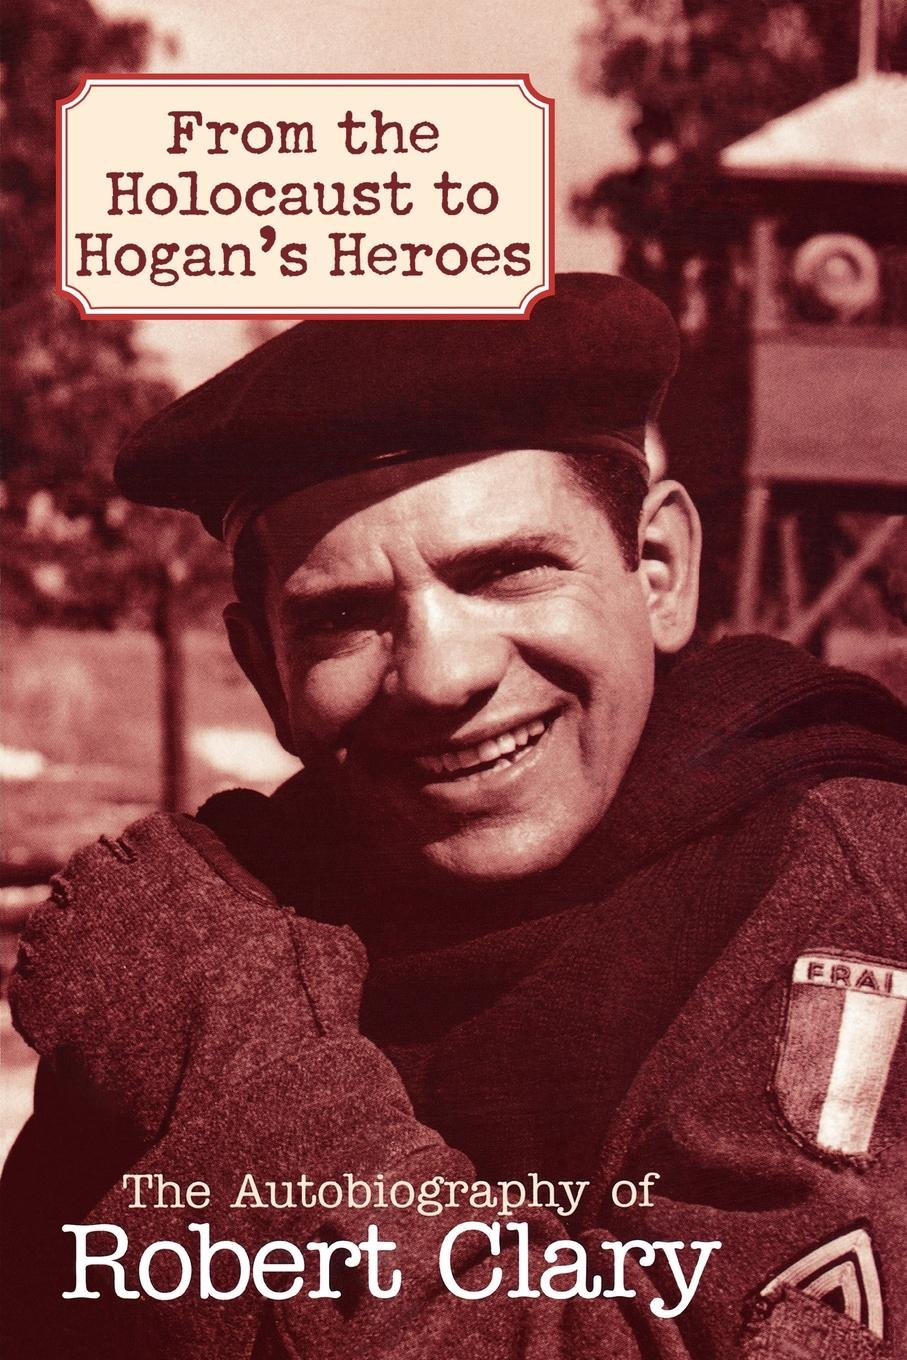 Download From the Holocaust to Hogan's Heroes: The Autobiography of Robert Clary PDF